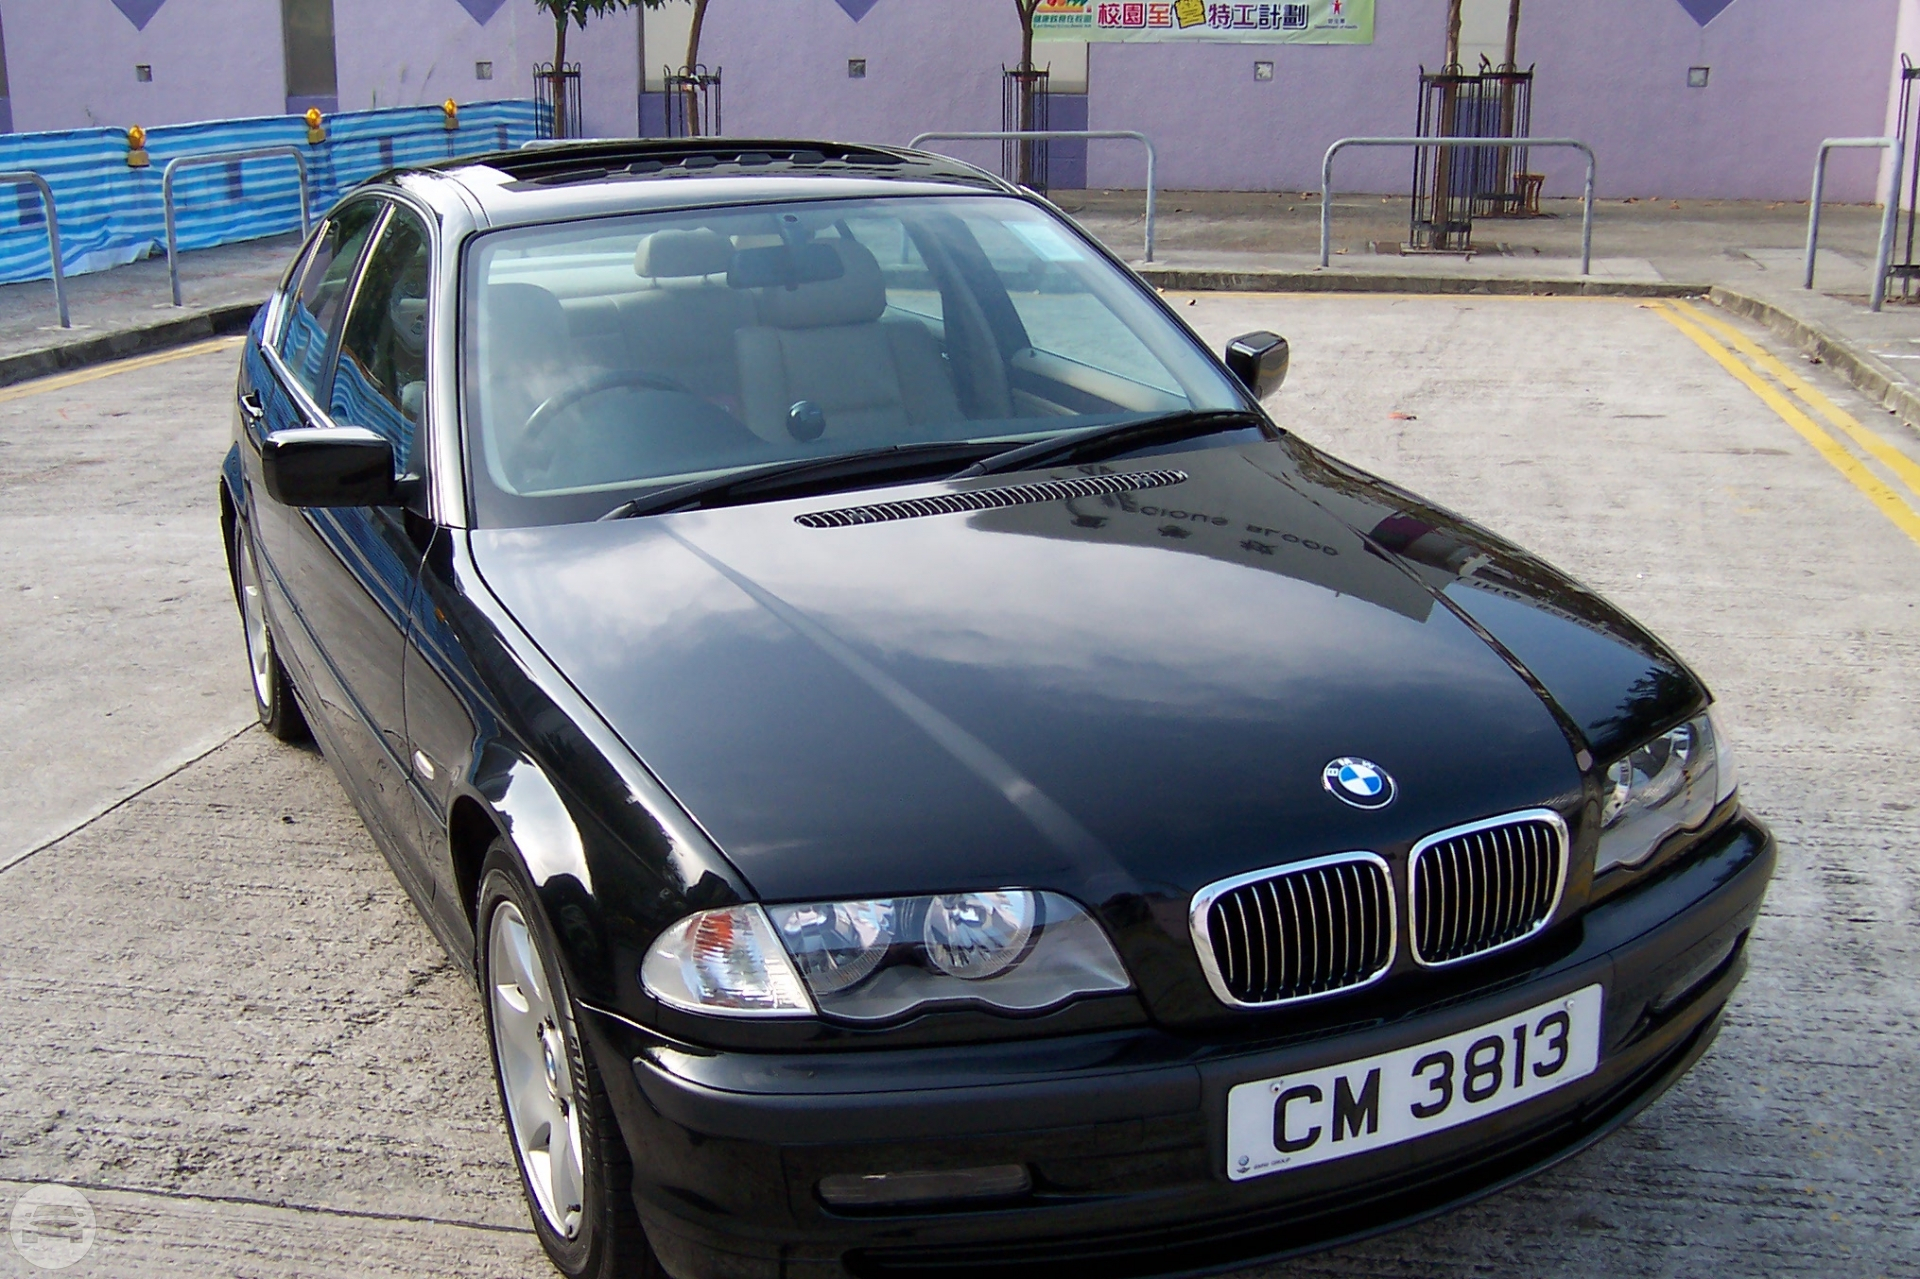 BMW 3 Sedan  / Kowloon, Hong Kong   / Hourly HKD 0.00